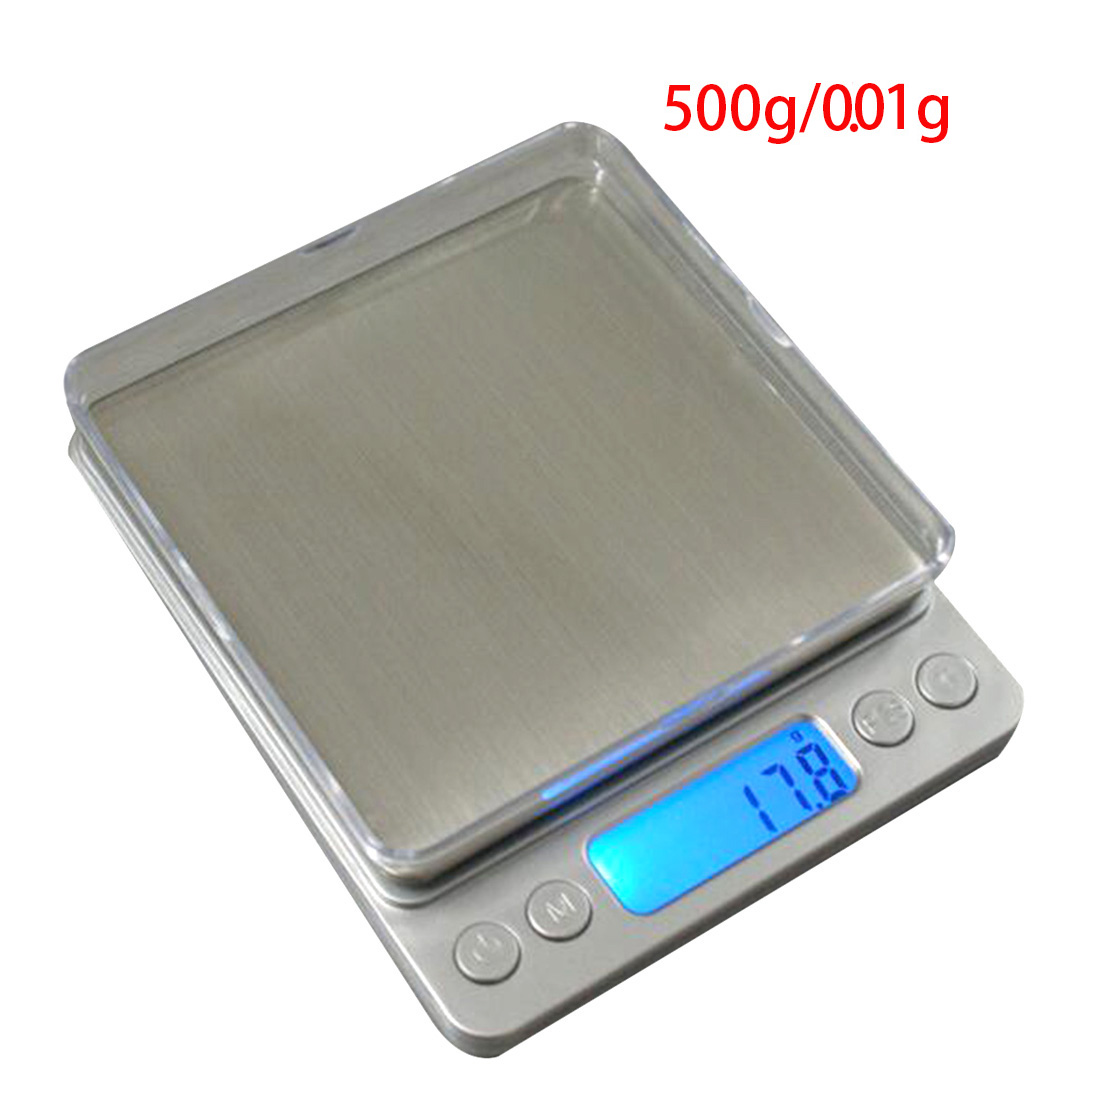 500g Electronic <font><b>Digital</b></font> Precision Mini <font><b>Scale</b></font> Jewelry <font><b>Scales</b></font> Pocket <font><b>Scale</b></font> Balance 0.01 Accuracy Kitchen <font><b>Weight</b></font> Balance <font><b>Scales</b></font> image